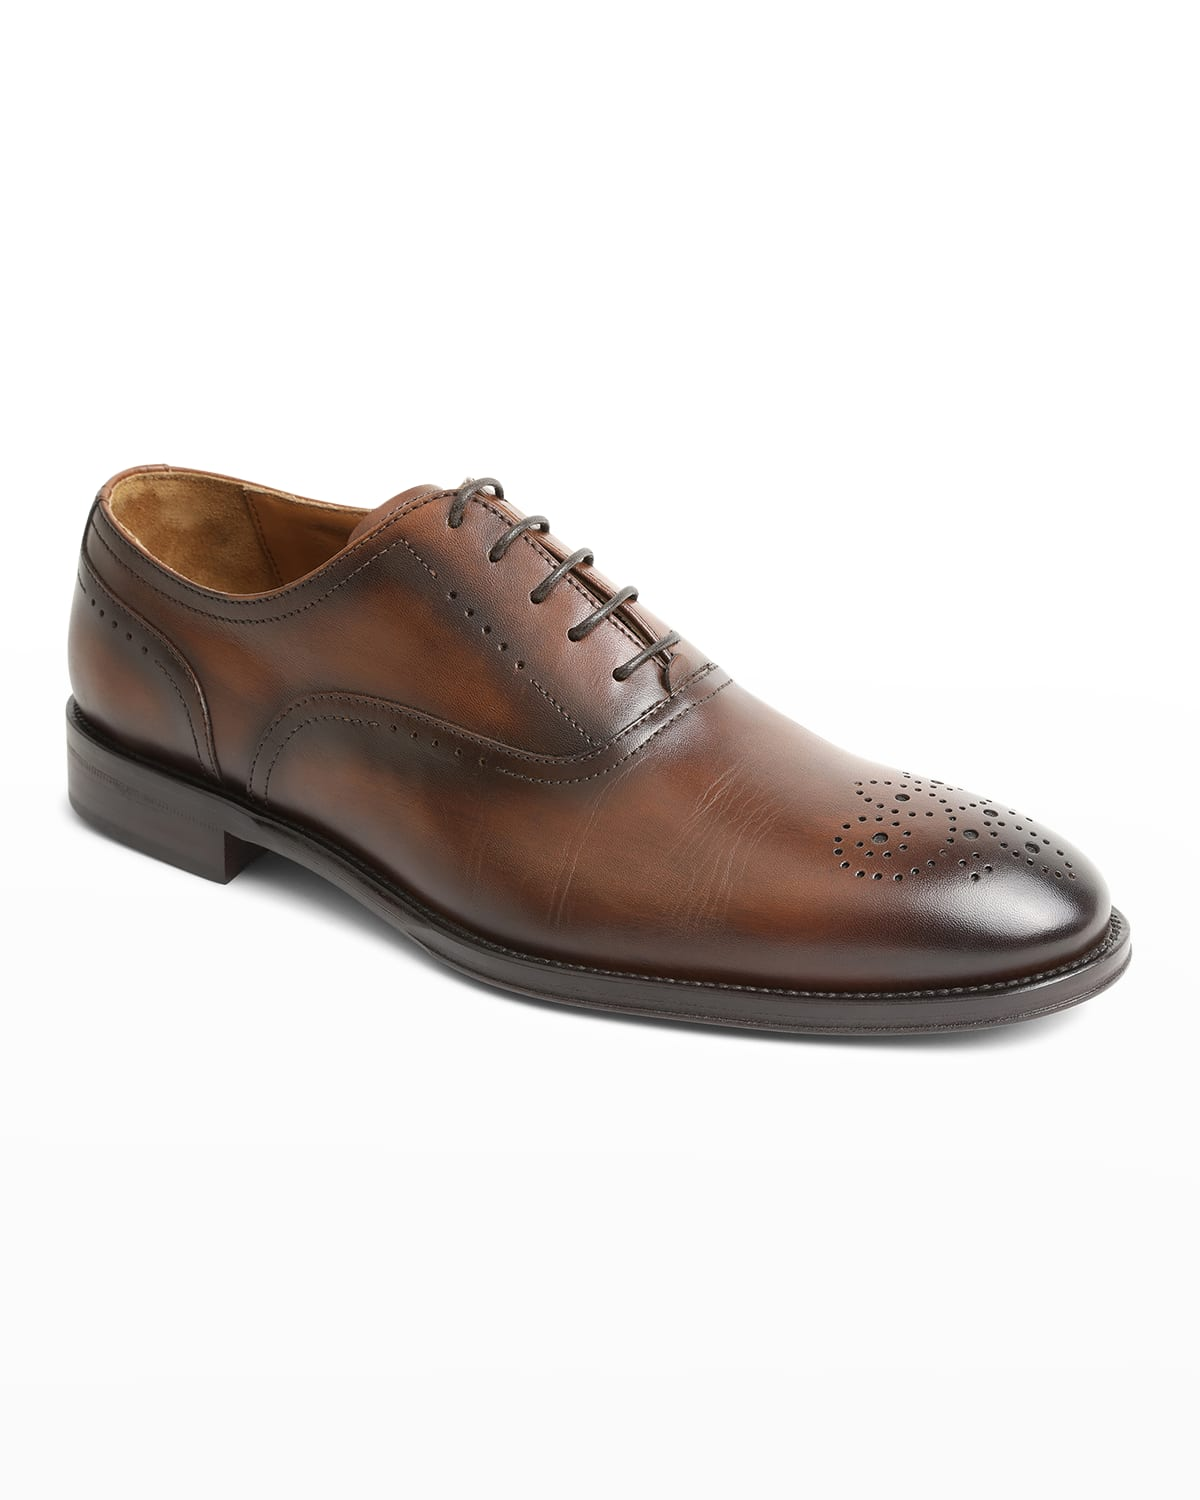 Arno Burnished Leather Lace-Up Oxfords